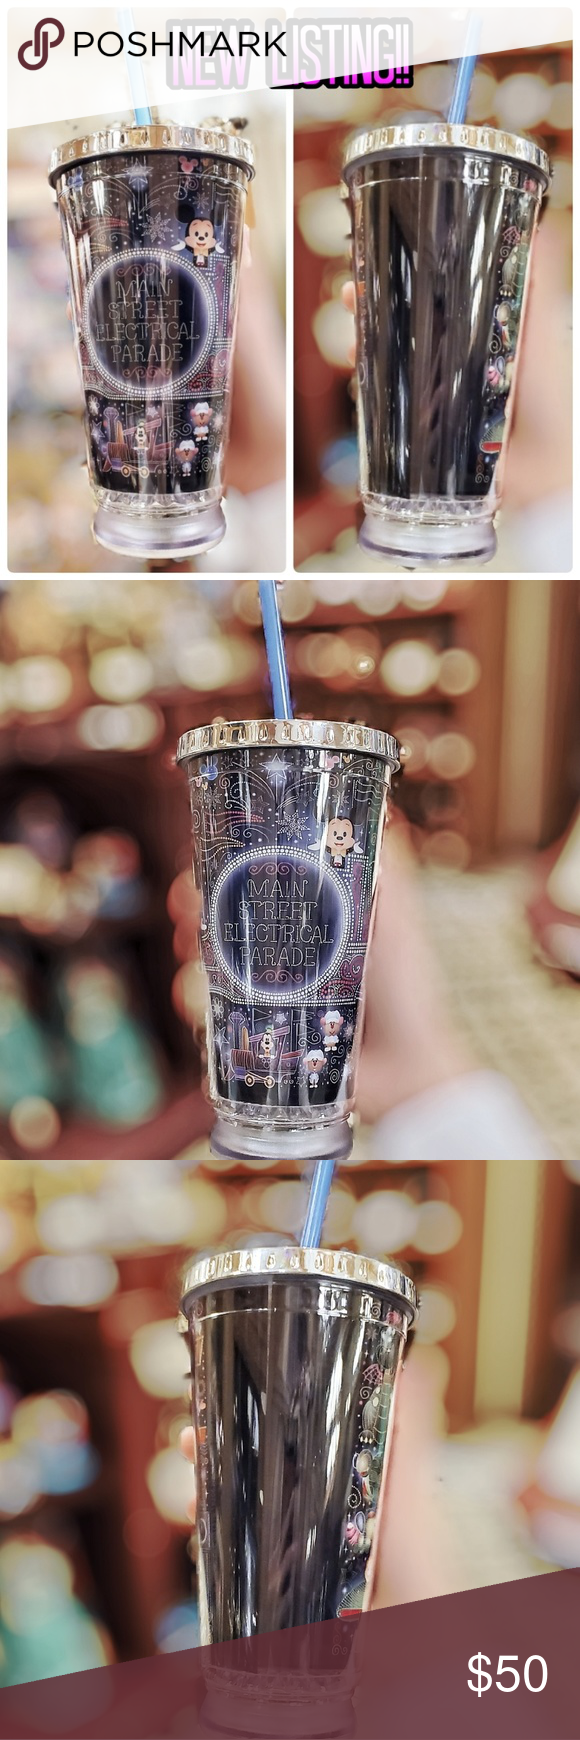 DISNEY EXCLUSIVE MAIN ST ELECTRICAL PARADE TUMBLER 100% AUTHENTIC AND BRAND NEW DISNEY PARKS MERCHANDISE   ****PLEASE NOTE******** THERE MIGHT BE MINOR SCRATCHES/MANUFACTURE IMPERFECTIONS ON THESE TUMBLERS... BUT NO CRACKS  DISNEY PARKS EXCLUSIVE LIMITED EDITION MAIN STREET ELECTRICAL PARADE LED LIGHT UP TUMBLER BY Jerrod Maruyama Disney Kitchen Coffee & Tea Accessories #disneykitchen